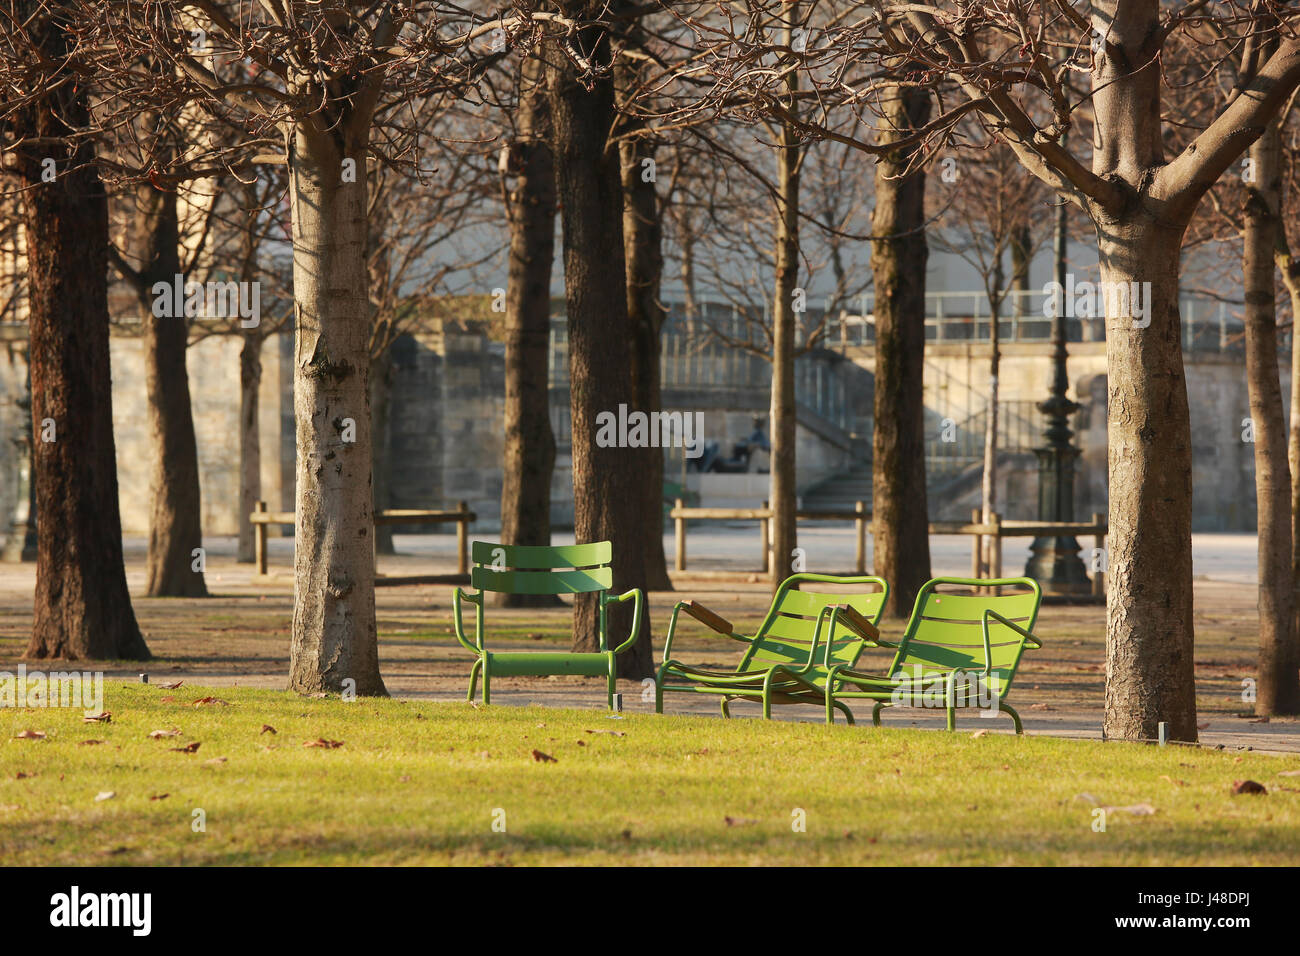 Jardin des Tuileries ( Tuileries Garden ) n Paris.The garden is one of the most famous park in Europe. - Stock Image